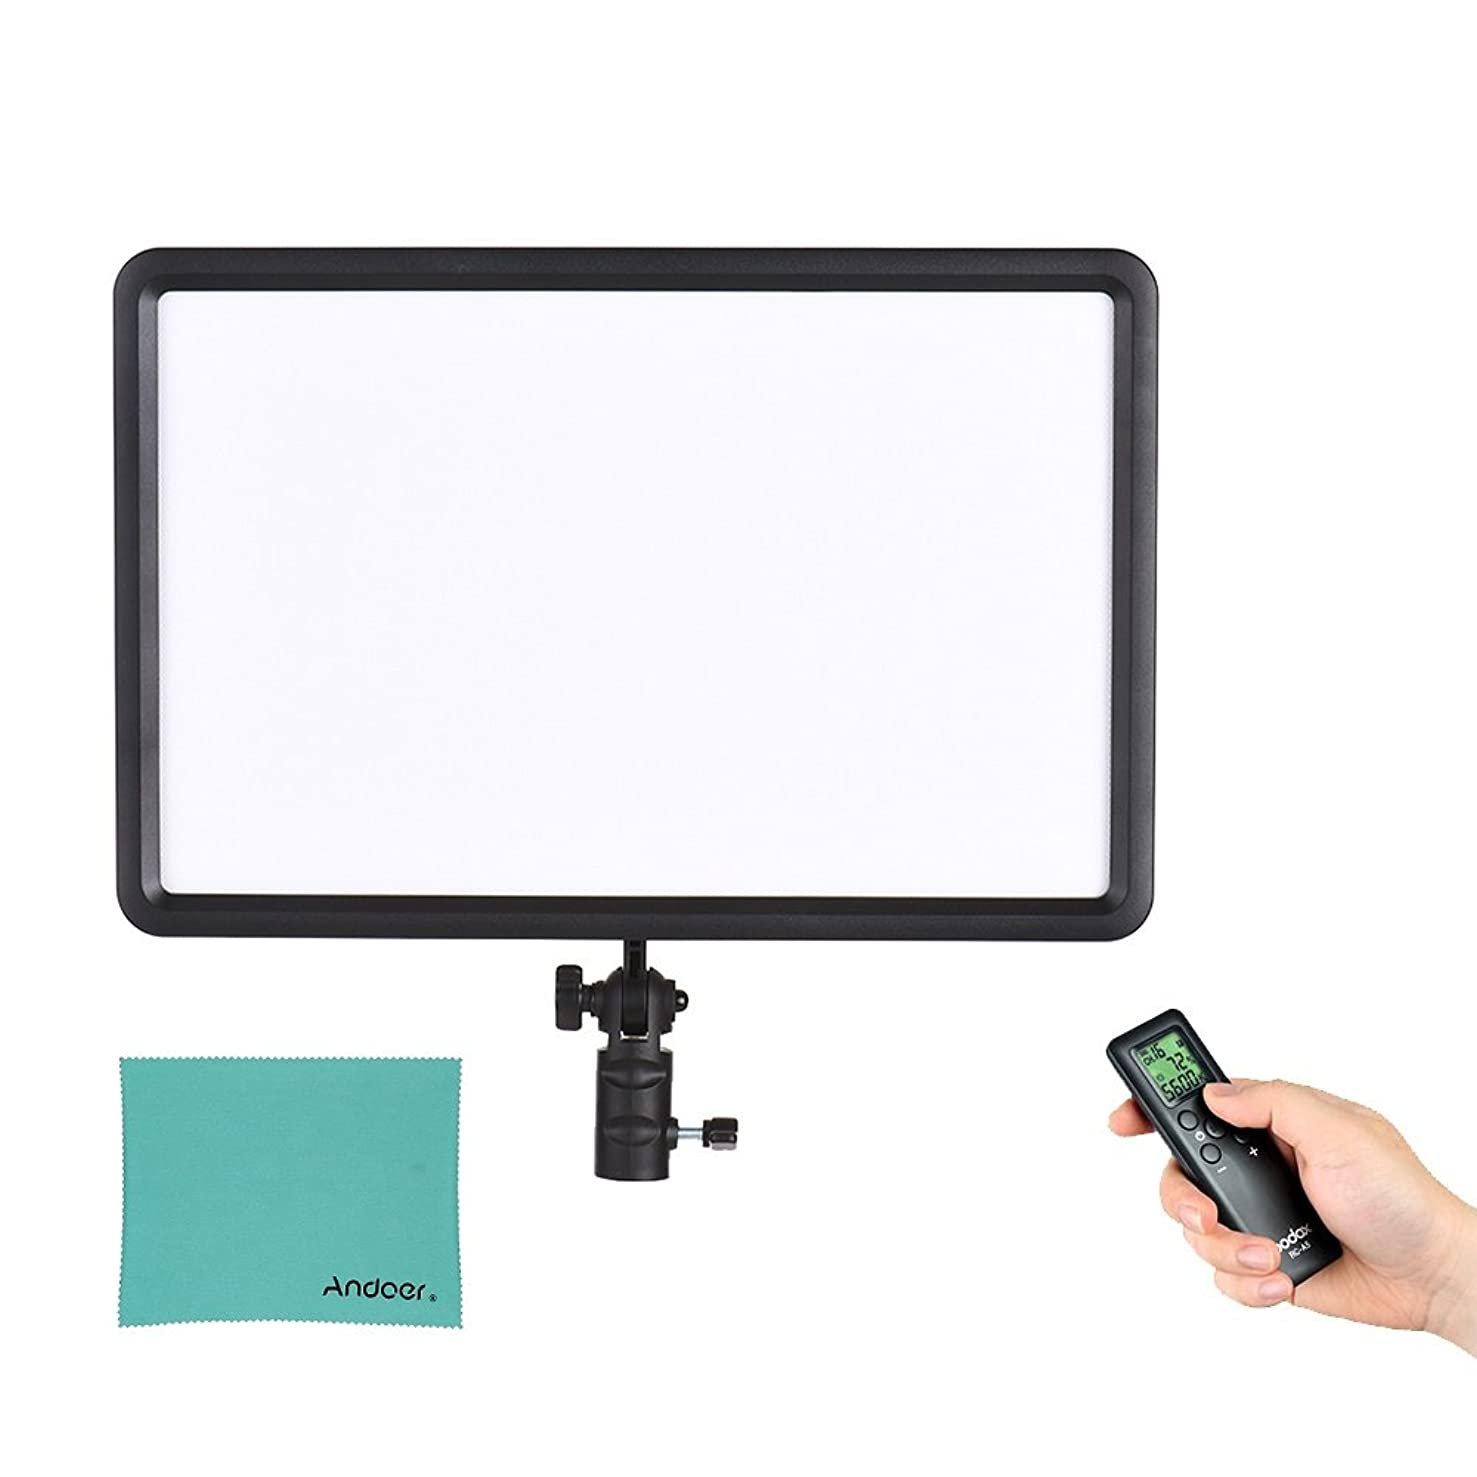 Godox LED P260C Ultra-Thin 30W Dimmable LED Video Light Panel Lamp 3200K-5600K Bi-Color Temperature with Wireless Remote Control Handle for Cannon Nikon Sony Digital DSLR Camera Studio Photography